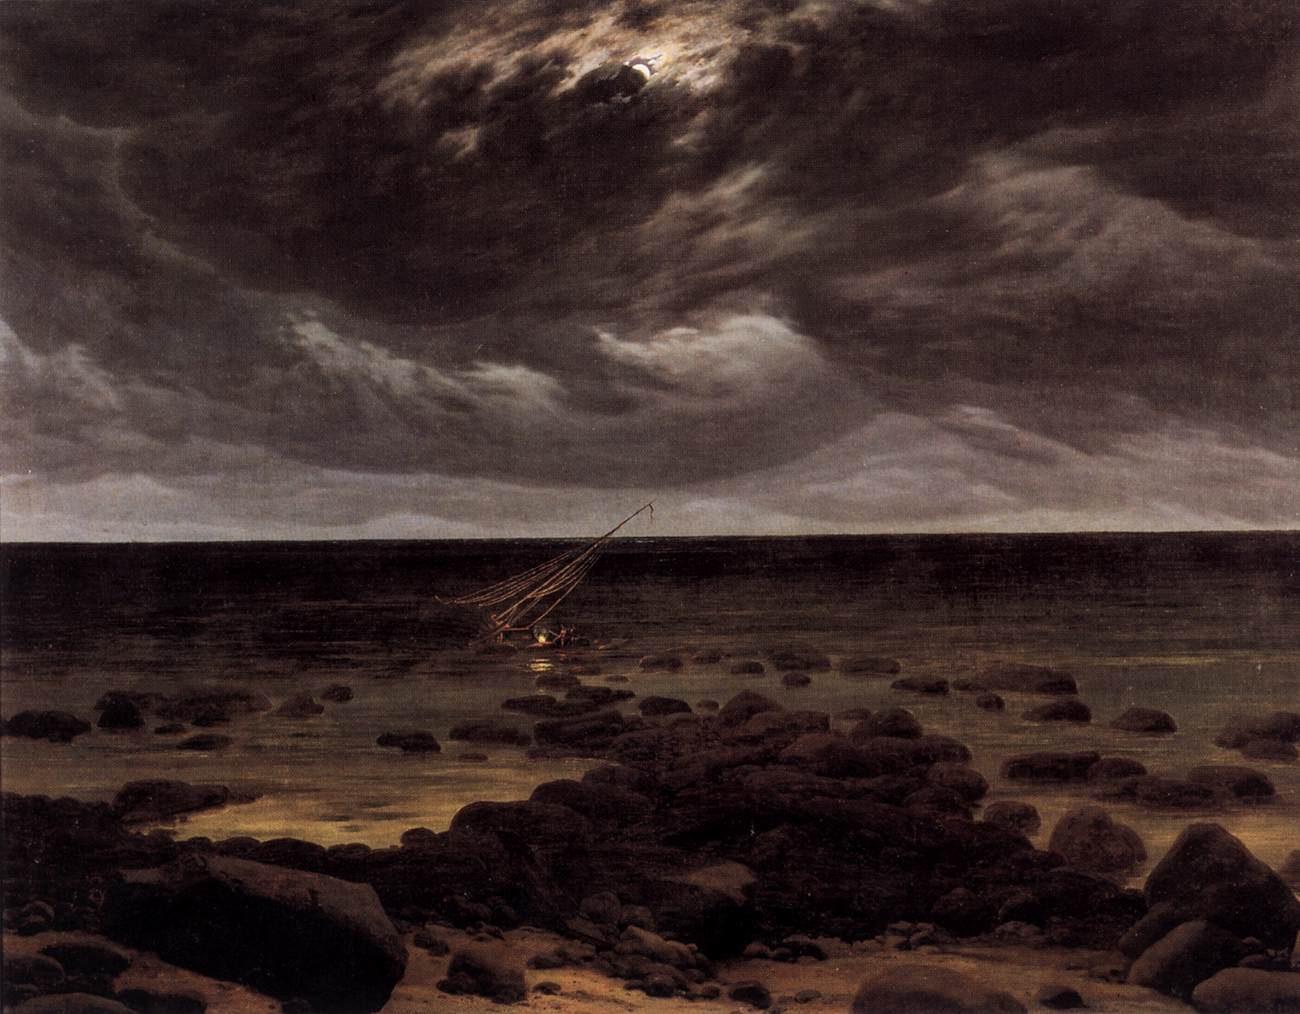 1448969468-seashore-with-shipwreck-by-moonlight-1825-30-nationalgalerie-berlin.jpg